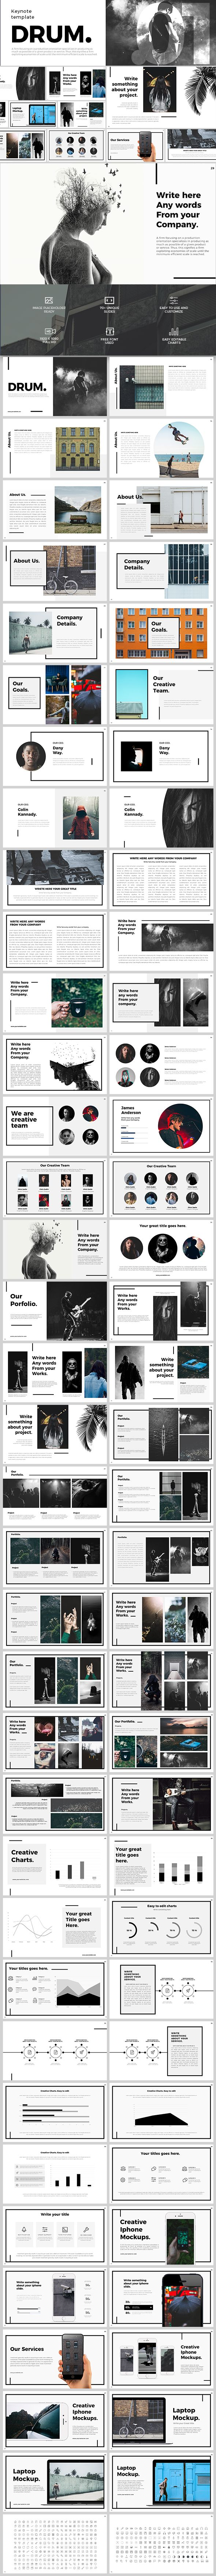 The 1761 best Layout images on Pinterest | Advertising, Calling ...